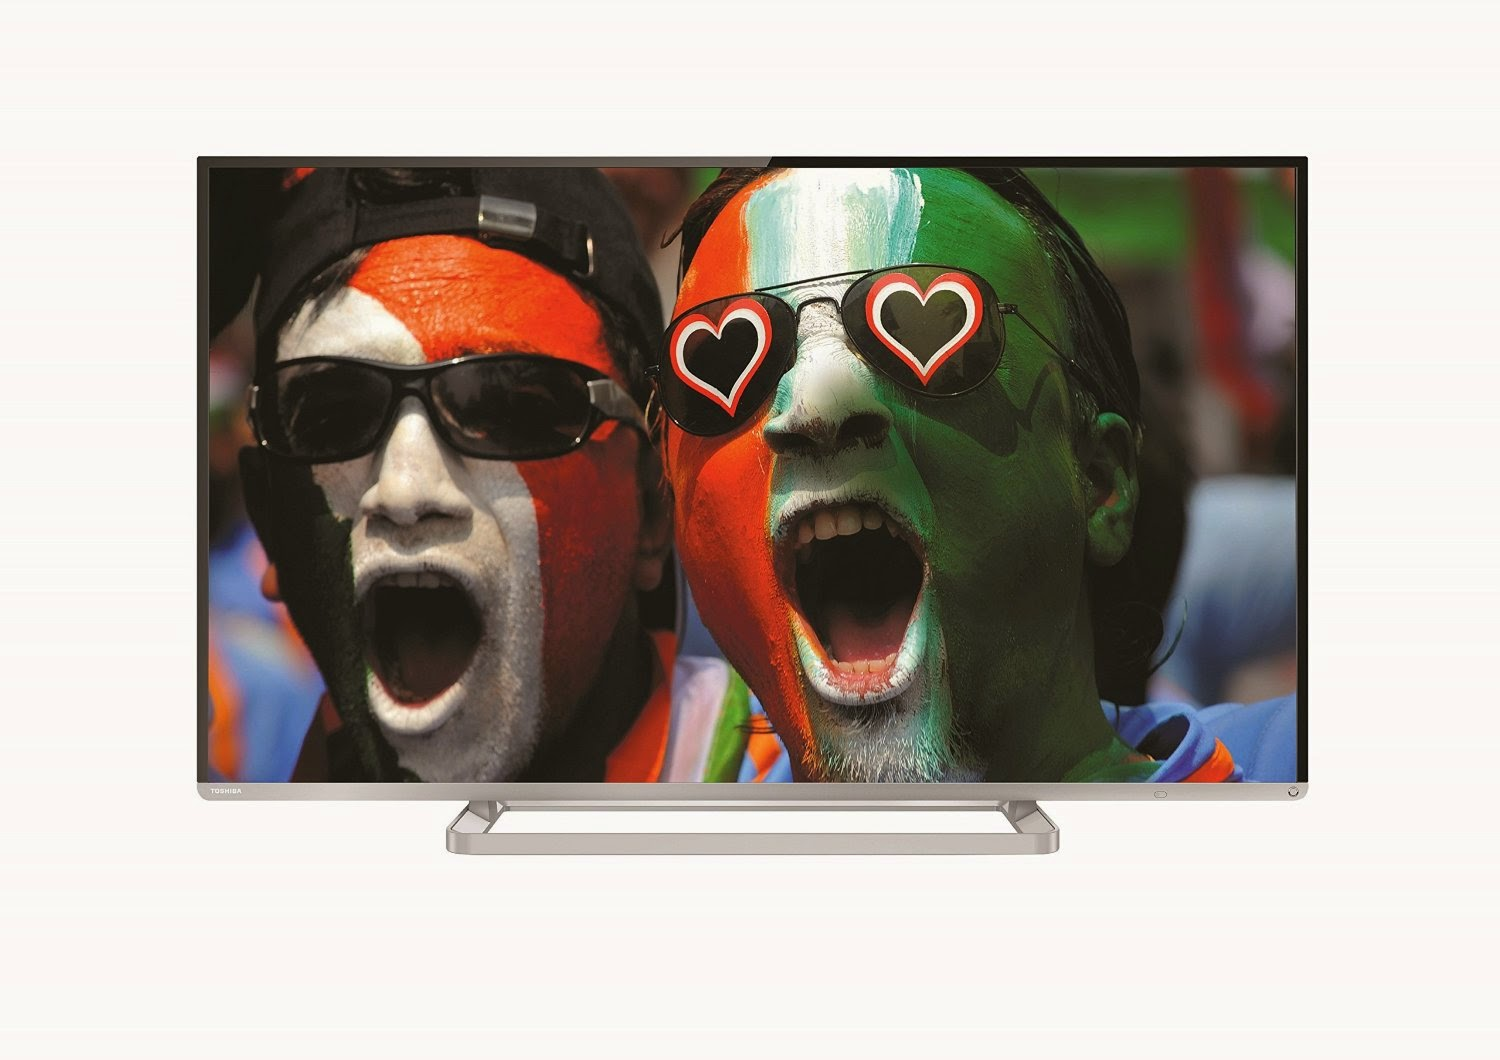 Amazon: Buy Toshiba 40l5400ze 101 cm (40 inches) Smart Google (Android 4.4.2) Full HD LED TV at Rs.46439